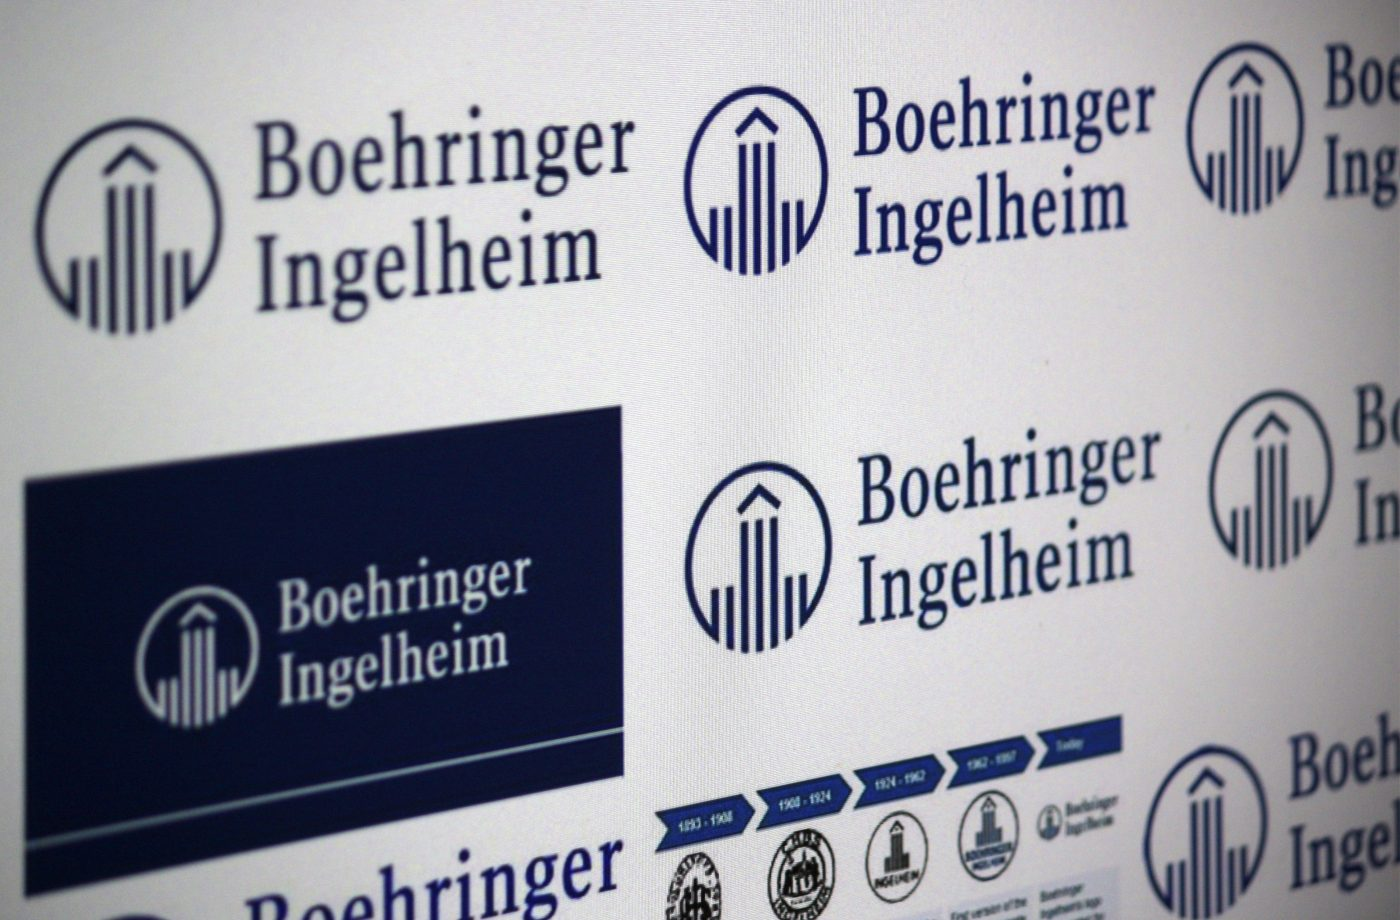 Boehringer Ingelheim Announces Several Idiopathic Pulmonary Fibrosis Presentations at Upcoming International Scientific Meeting